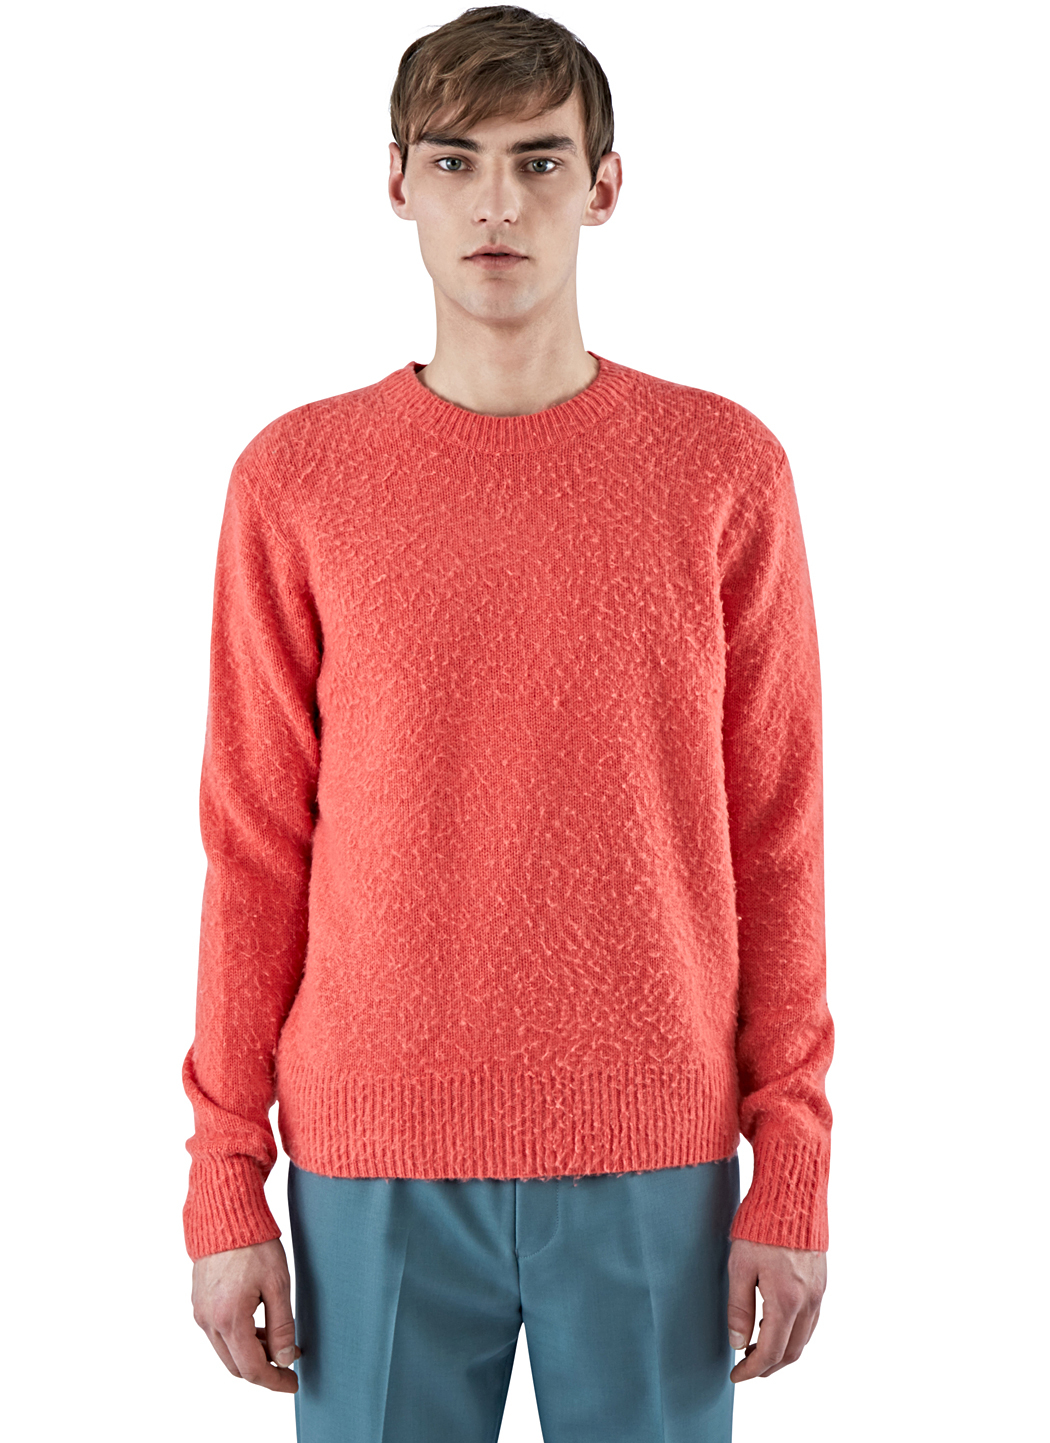 acne studios men 39 s peele cashmere knit sweater in pink in pink for men lyst. Black Bedroom Furniture Sets. Home Design Ideas